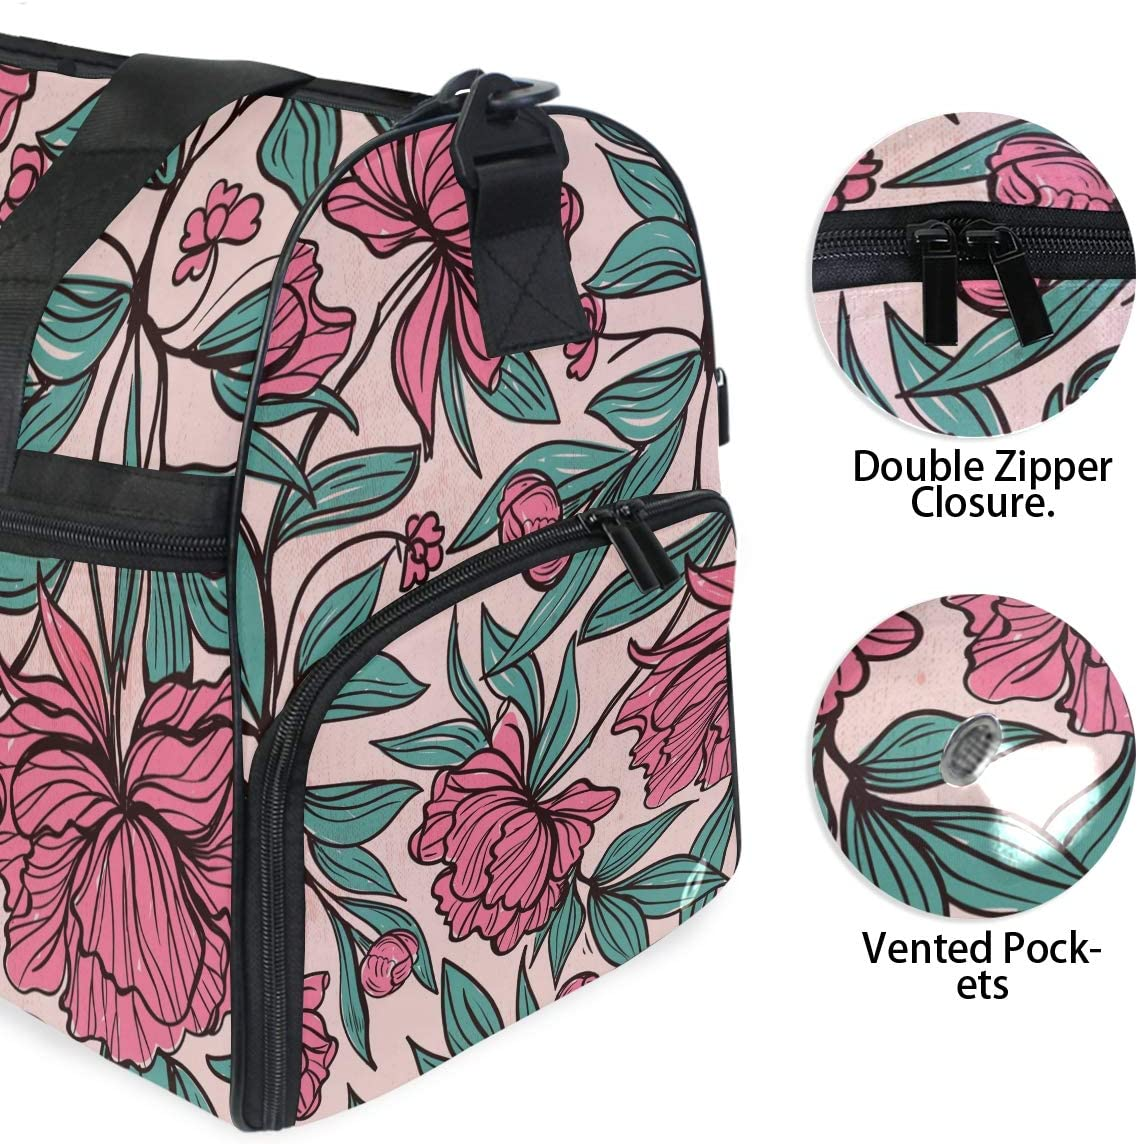 Vintage Peony Flower Sports Gym Bag with Shoes Compartment Travel Duffel Bag for Men Women